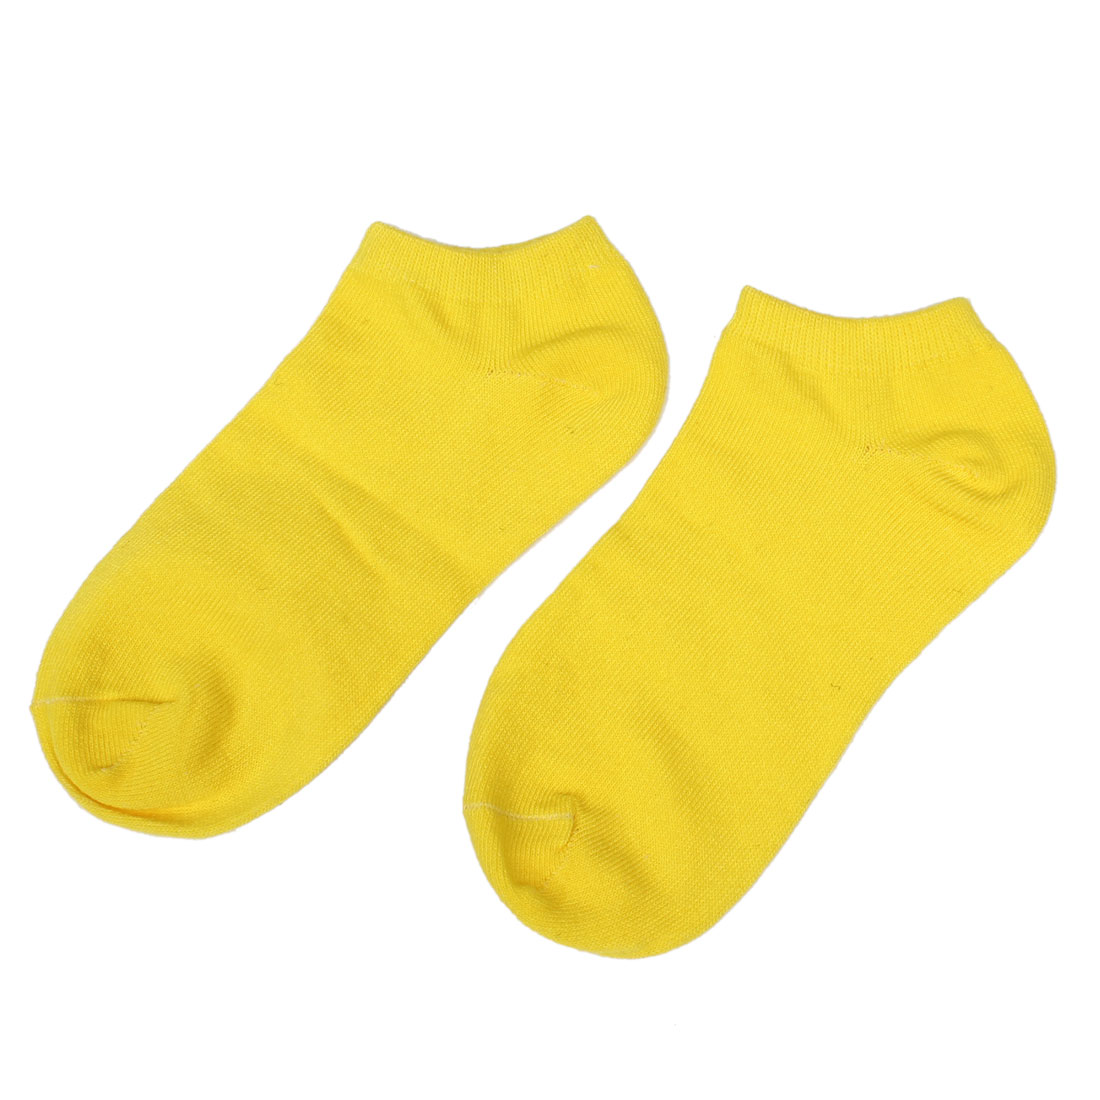 Lady Woman Stretchy Low Cut Ankle Socks Hosiery Pair Yellow